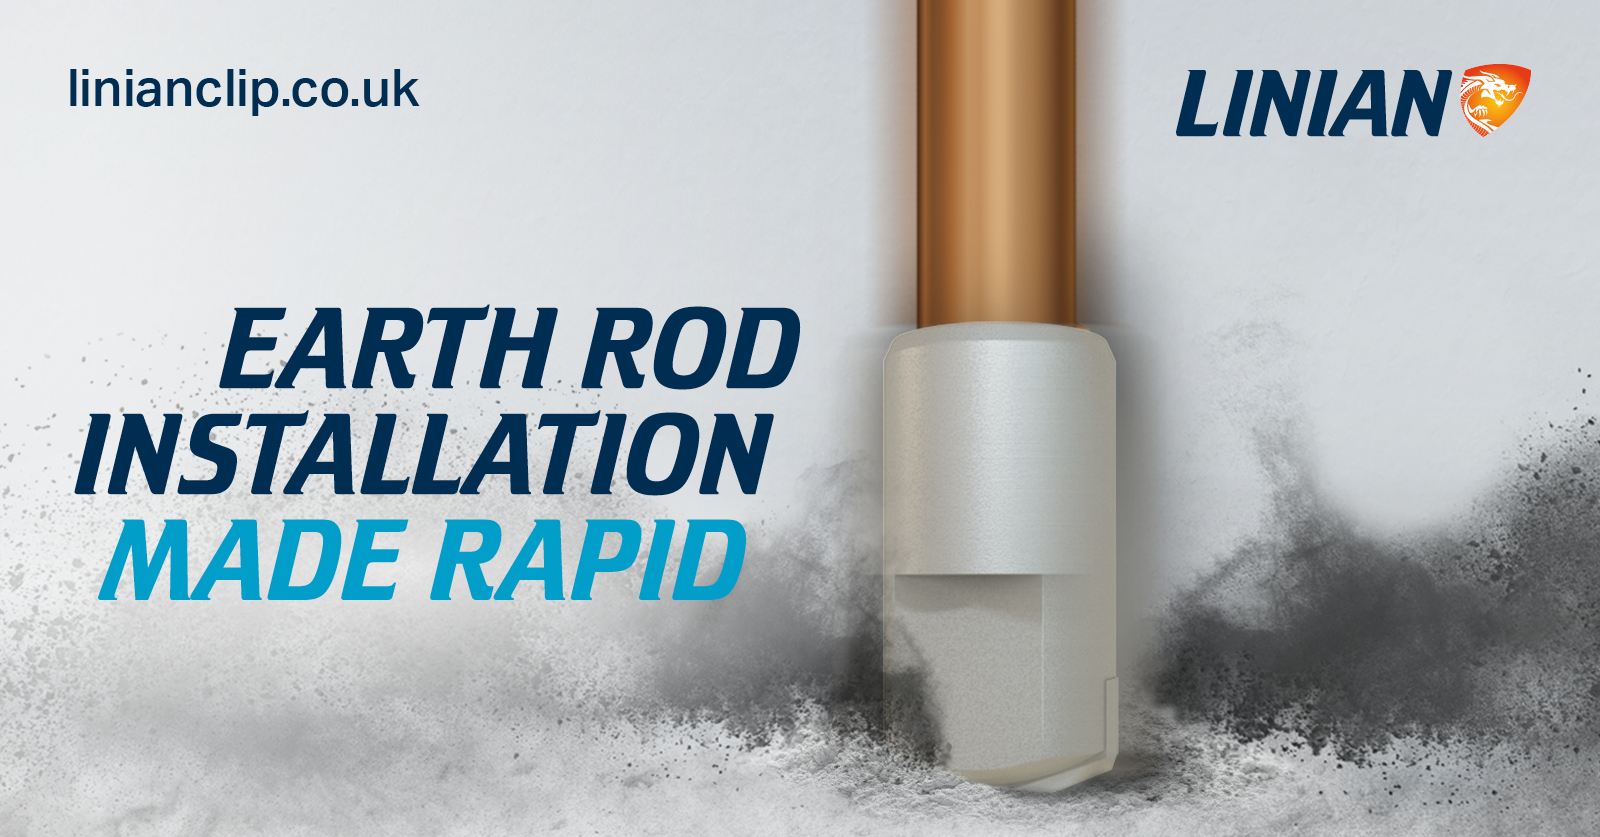 Introducing LINIAN's latest innovation – the EARTH ROD PRO